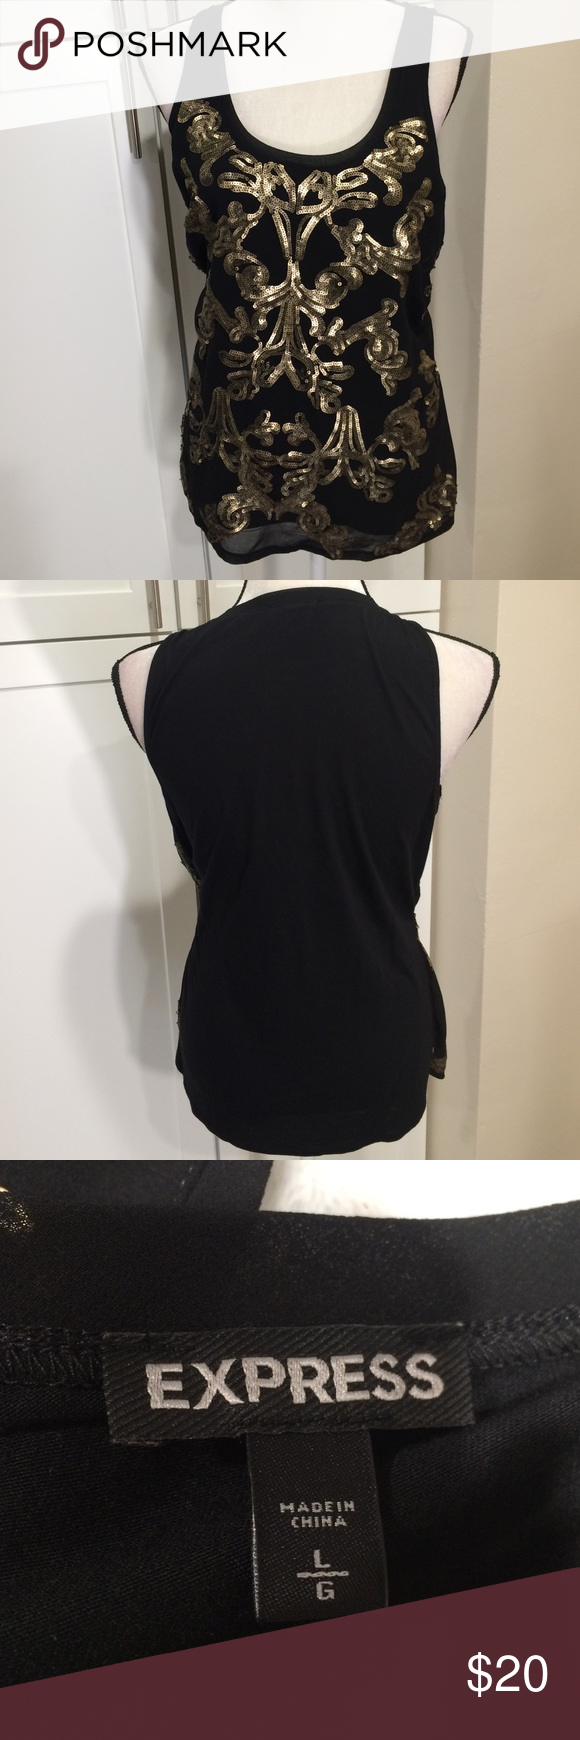 2b1ac104315c1 Beautiful black w gold sequence Sleeveless black w gold sequence elegant  top Express Tops Blouses